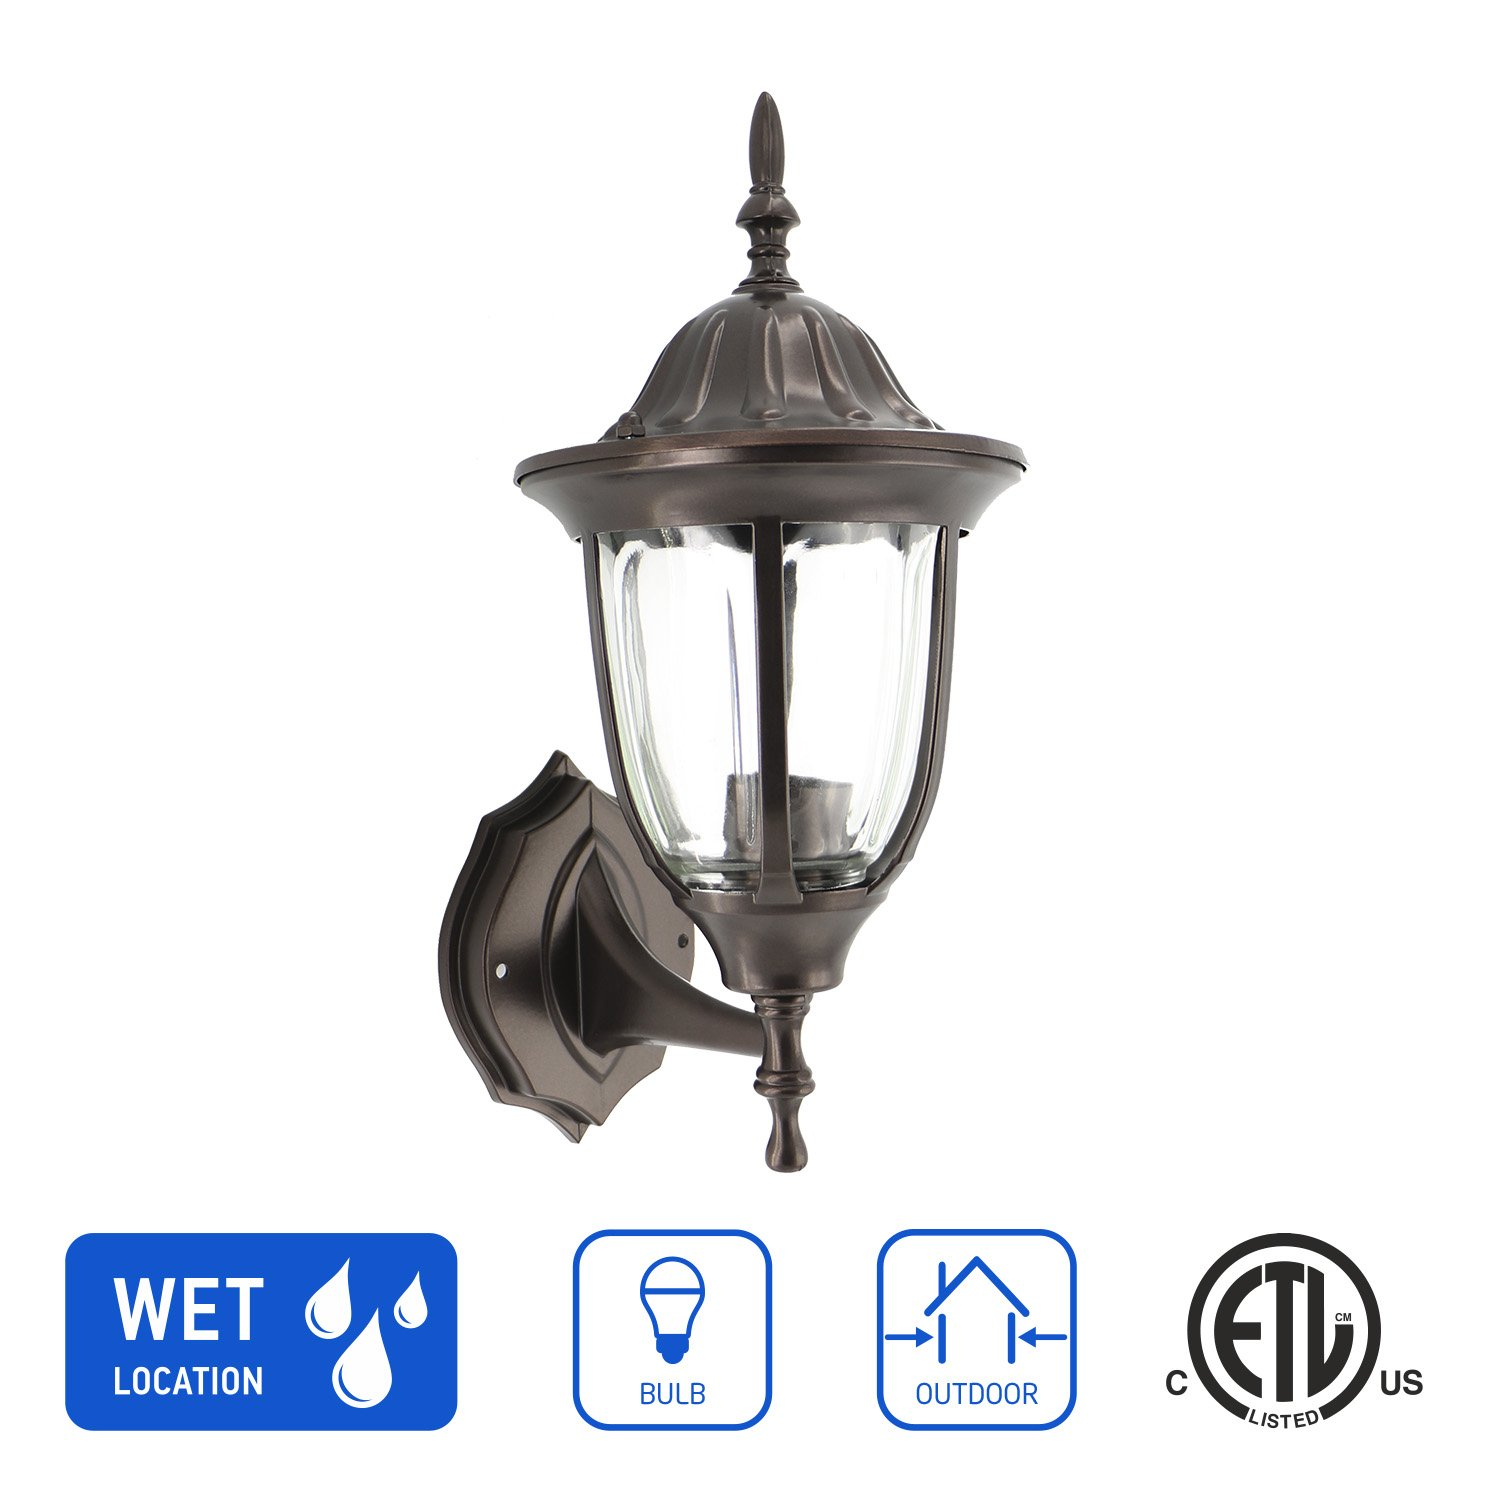 IN HOME 1-Light Outdoor Exterior Wall Up Lantern, Traditional Porch Patio Lighting Fixture L03 with One E26 Base, Water-Proof, Bronze Cast Aluminum Housing, Clear Glass Panels, ETL Listed